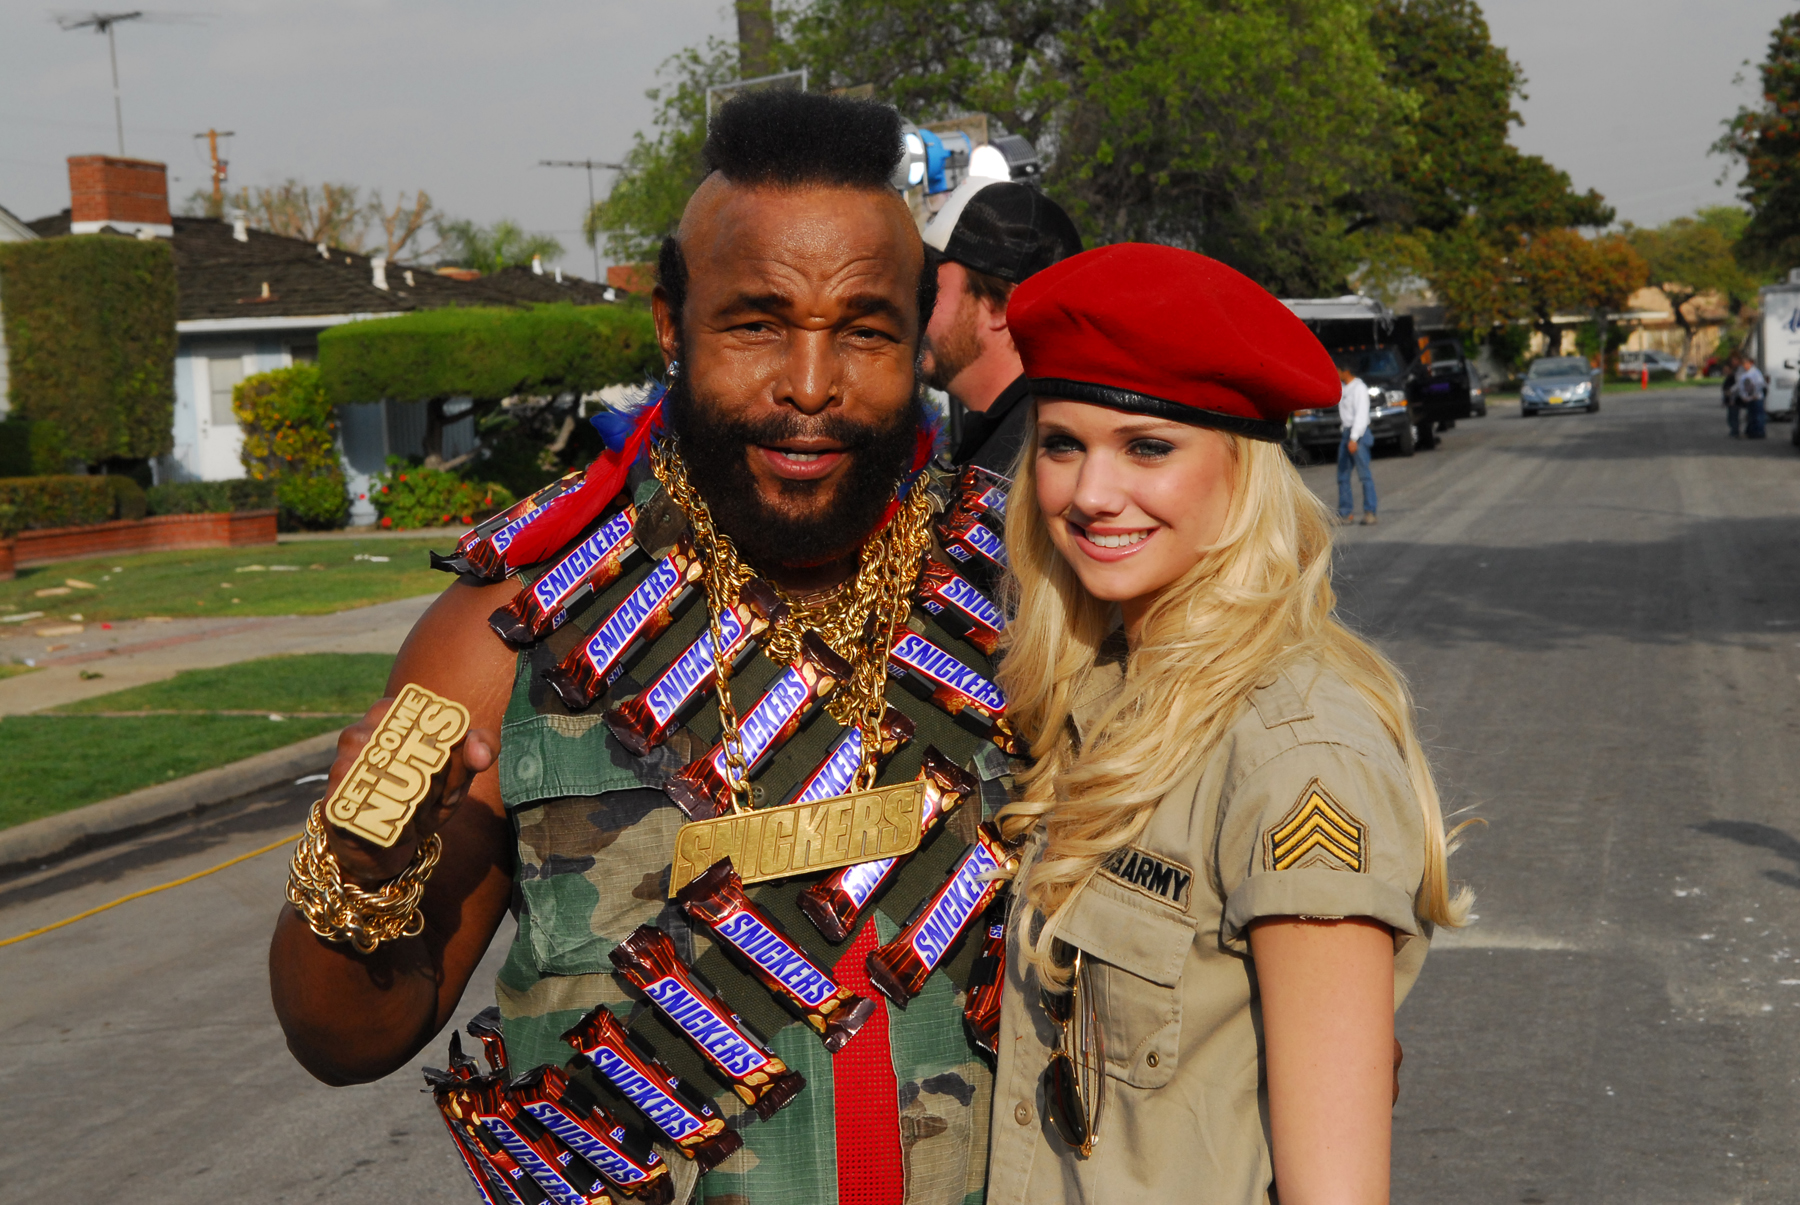 Snickers Commercial with Mr. T